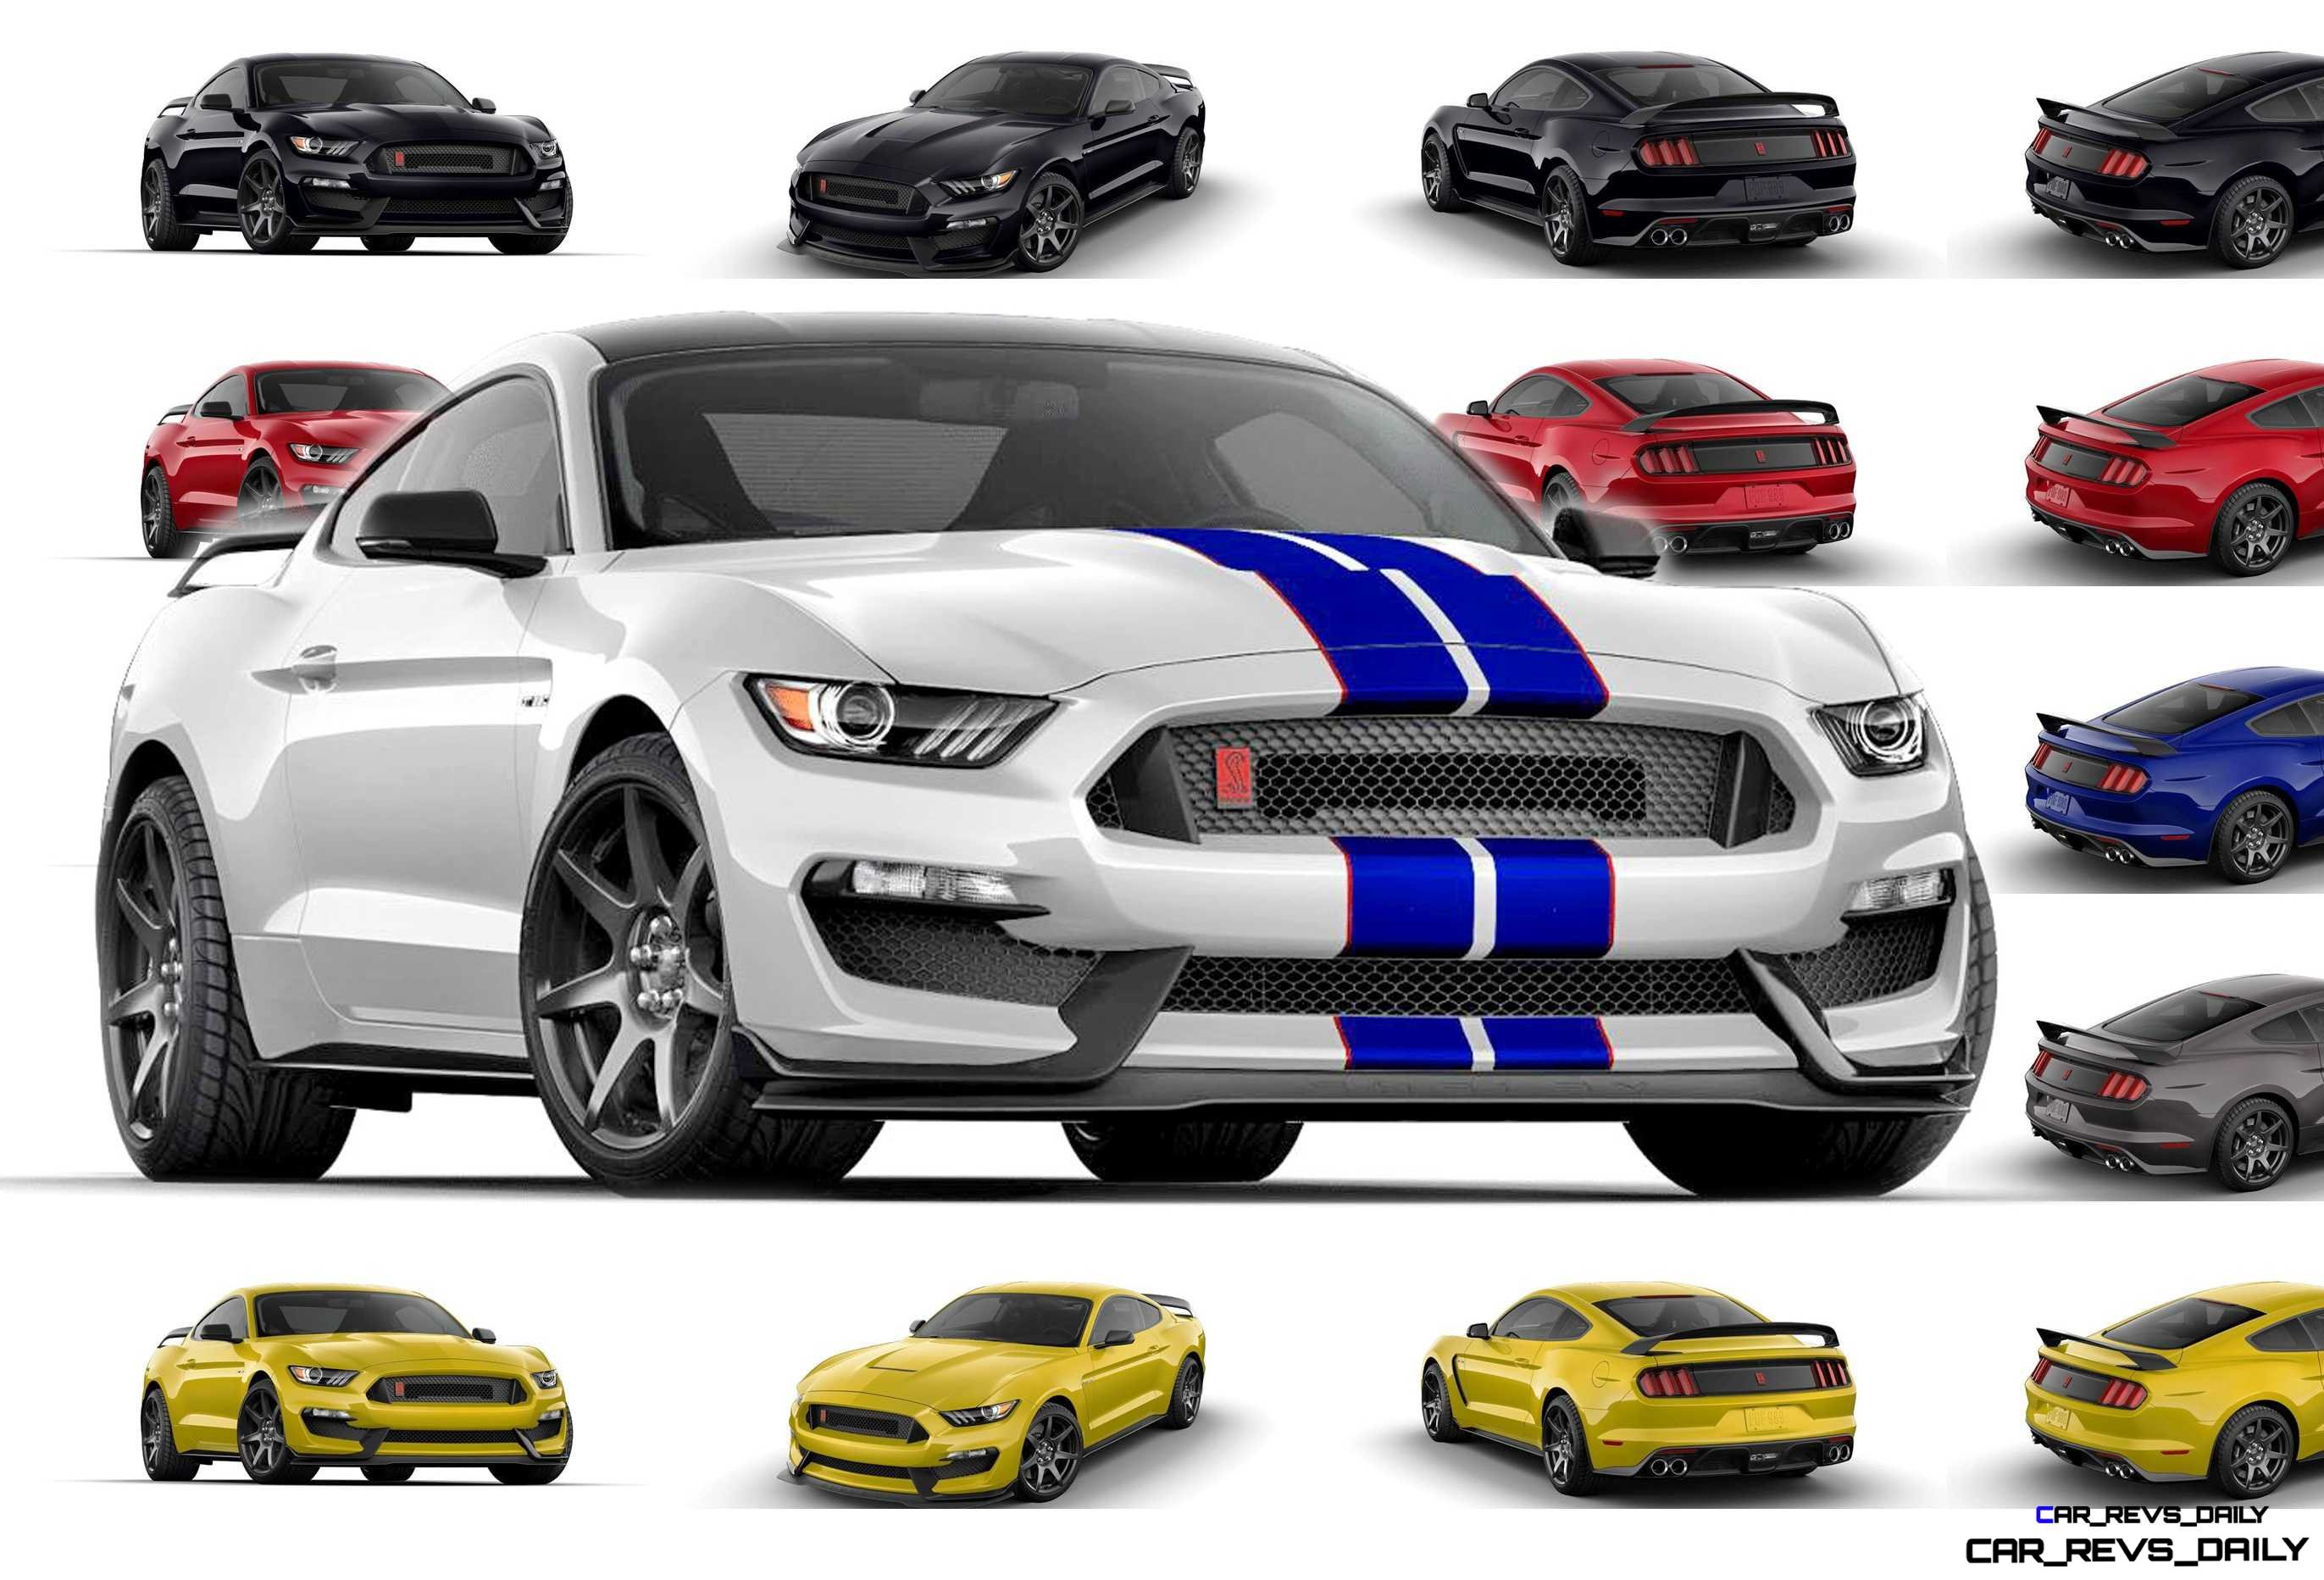 2016 Shelby Ford Mustang Gt350r Colors And Racing Stripes Visualizer